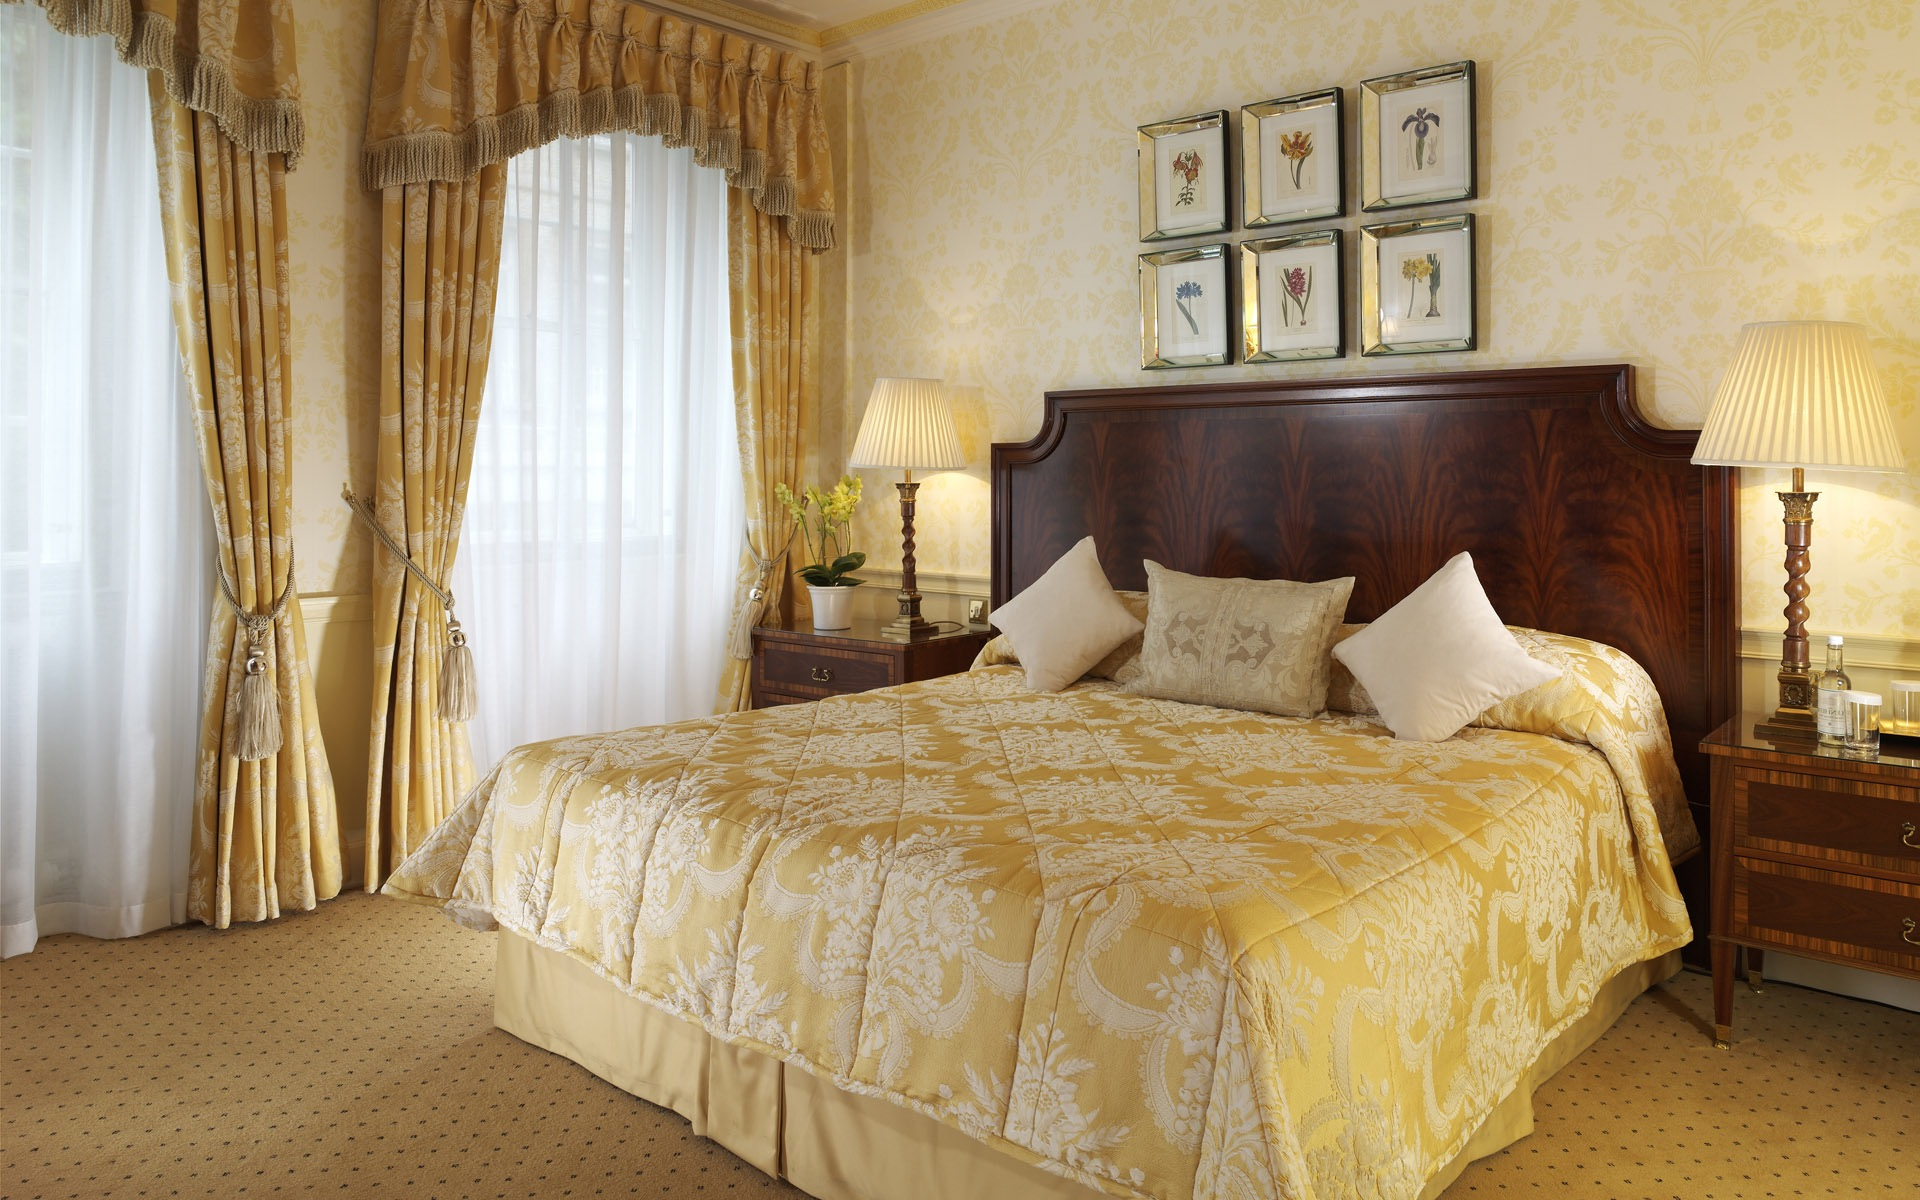 Classic Bedroom With Gorgeous Lace Curtains Decor (Image 5 of 20)